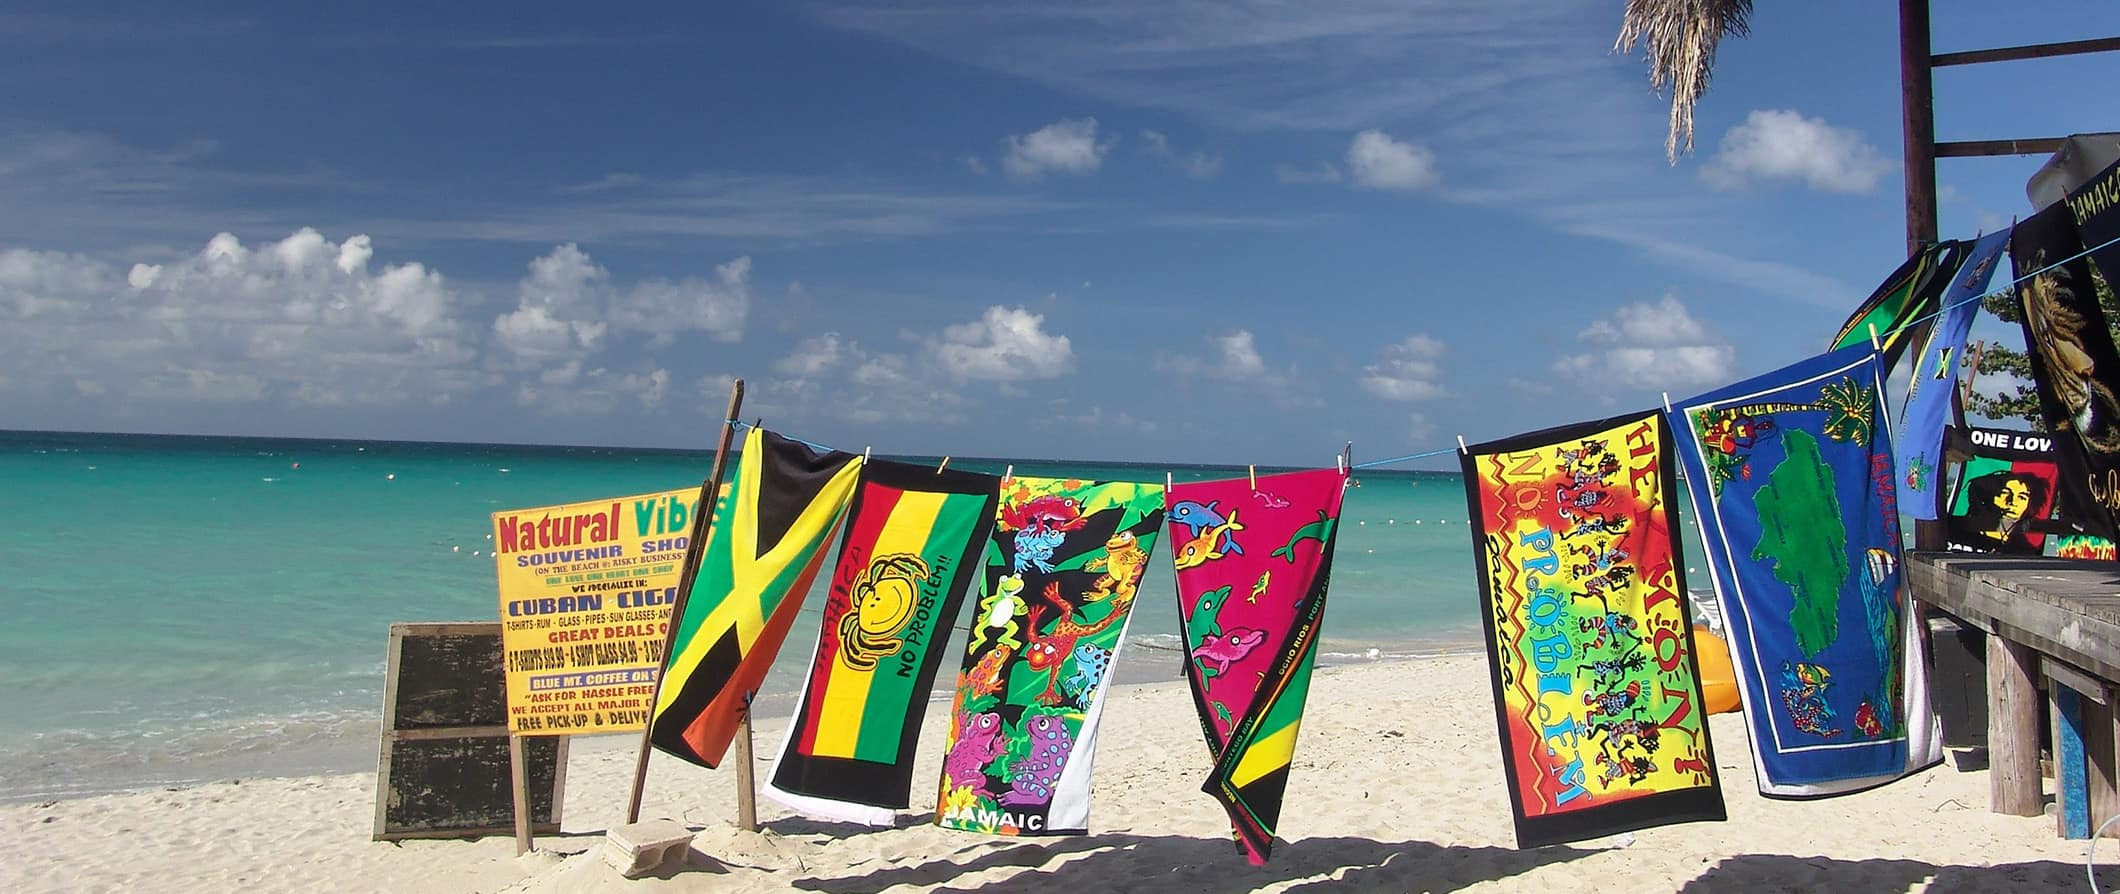 souvenirs on a beach in Jamaica